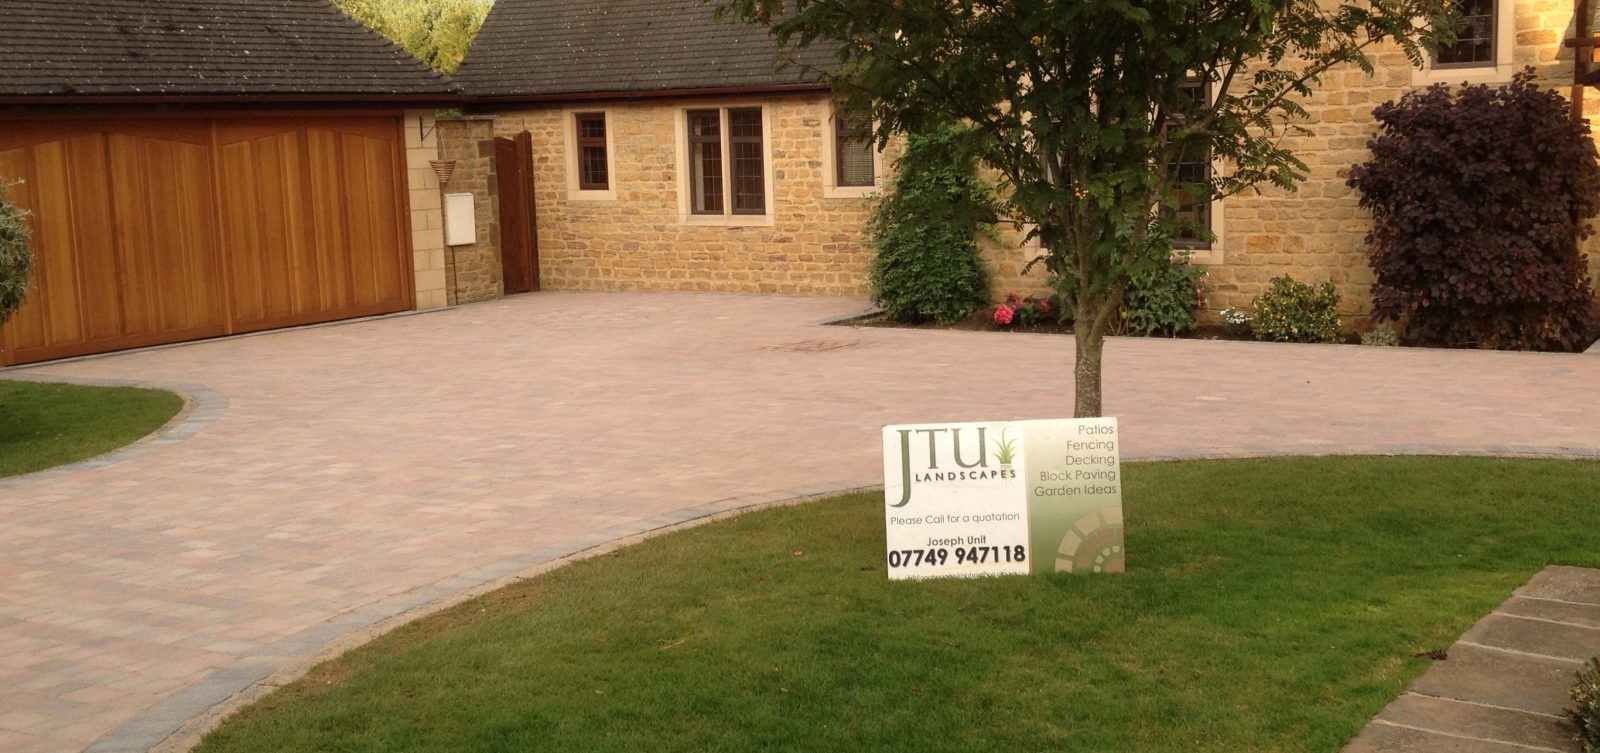 bespoke driveway and front garden landscaping from JTU serving the Daventry, Northamptonshire, and Warwickshire areas